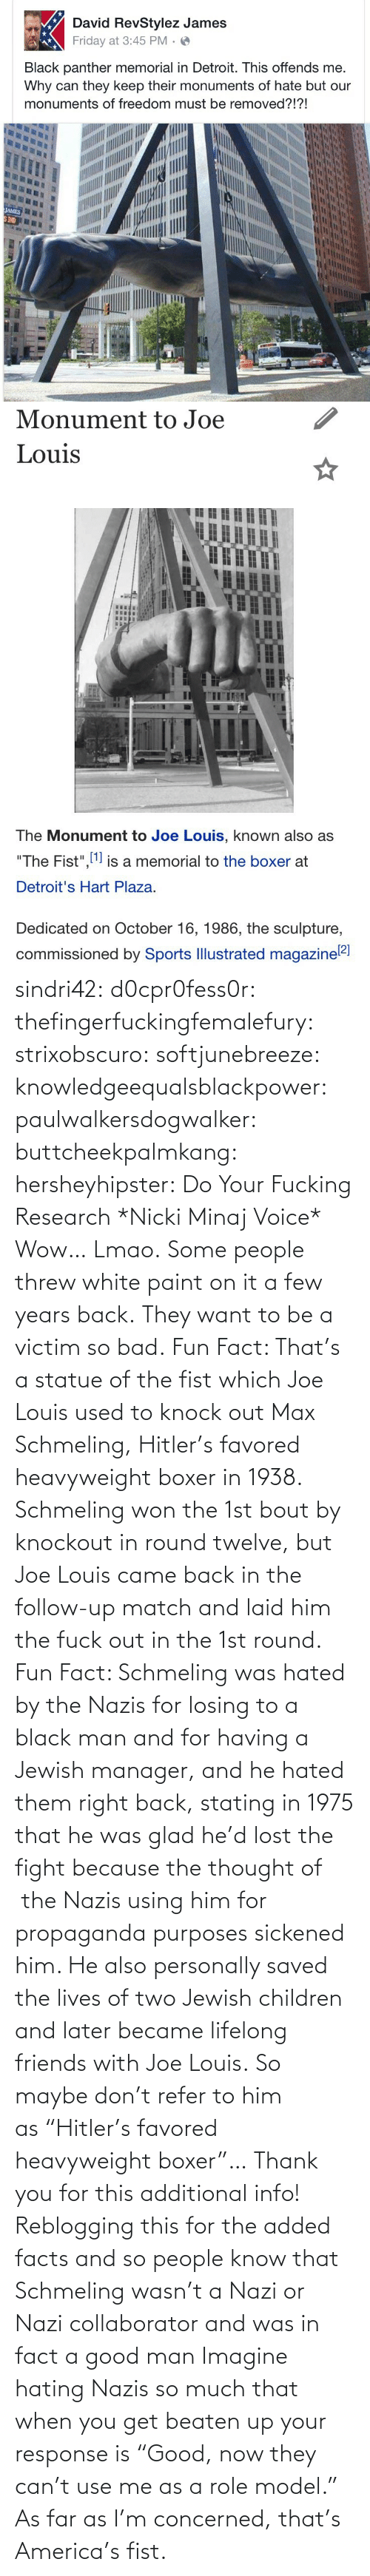 "follow: sindri42:  d0cpr0fess0r:  thefingerfuckingfemalefury:  strixobscuro:  softjunebreeze:  knowledgeequalsblackpower:  paulwalkersdogwalker:   buttcheekpalmkang:   hersheyhipster:  Do Your Fucking Research *Nicki Minaj Voice*    Wow… Lmao.   Some people threw white paint on it a few years back.   They want to be a victim so bad.  Fun Fact: That's a statue of the fist which Joe Louis used to knock out Max Schmeling, Hitler's favored heavyweight boxer in 1938. Schmeling won the 1st bout by knockout in round twelve, but Joe Louis came back in the follow-up match and laid him the fuck out in the 1st round.  Fun Fact: Schmeling was hated by the Nazis for losing to a black man and for having a Jewish manager, and he hated them right back, stating in 1975 that he was glad he'd lost the fight because the thought of  the Nazis using him for propaganda purposes sickened him. He also personally saved the lives of two Jewish children and later became lifelong friends with Joe Louis. So maybe don't refer to him as ""Hitler's favored heavyweight boxer""…  Thank you for this additional info! Reblogging this for the added facts and so people know that Schmeling wasn't a Nazi or Nazi collaborator and was in fact a good man   Imagine hating Nazis so much that when you get beaten up your response is ""Good, now they can't use me as a role model.""  As far as I'm concerned, that's America's fist."